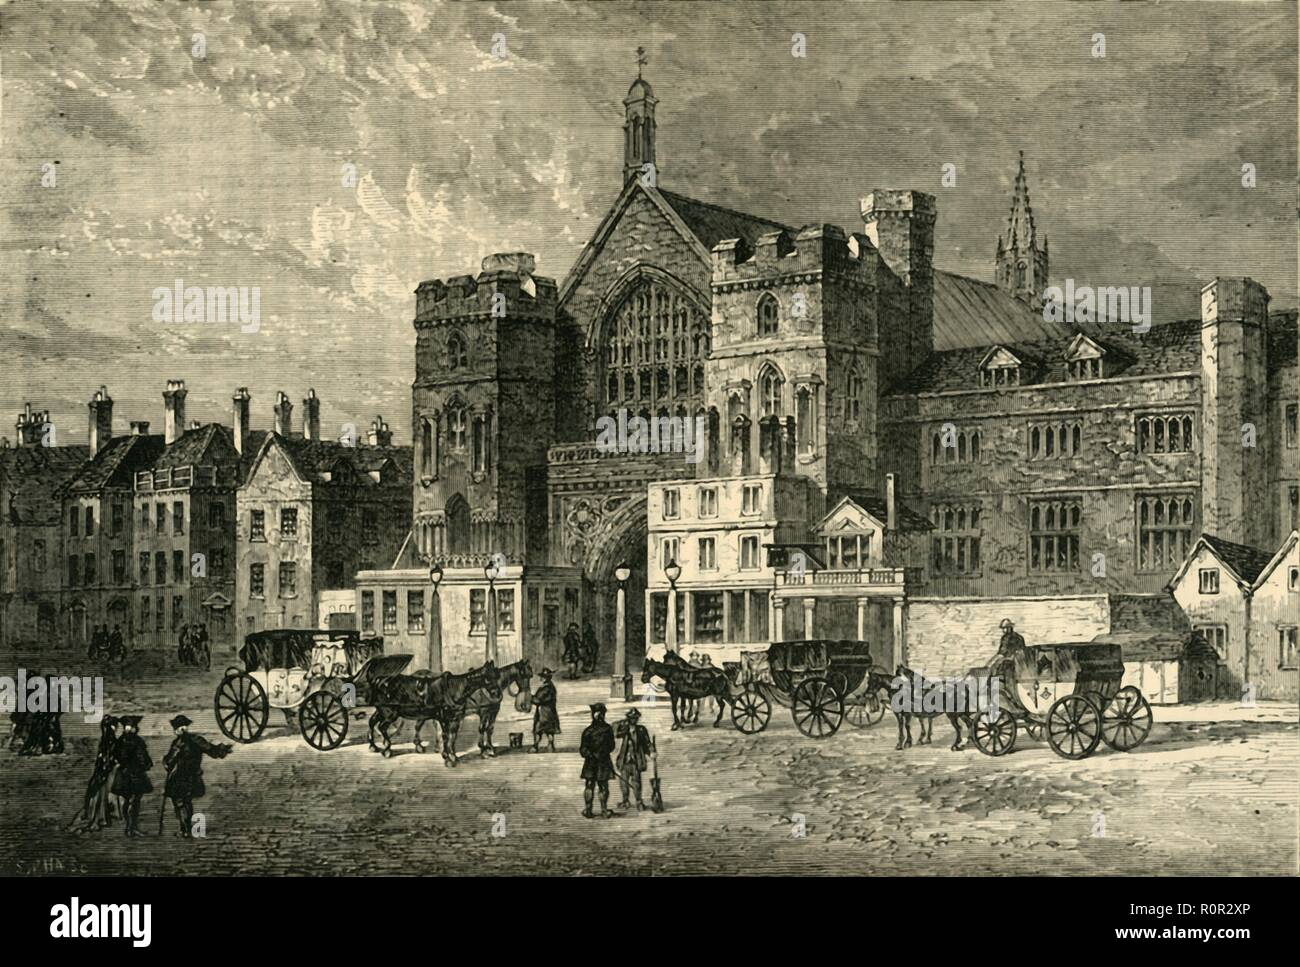 'Westminster Hall', (1881). Westminster Hall in London was completed in 1099. This view shows the Houses of Parliament in the late 18th century, before the fire of 1834 which destroyed most of the complex, the Hall being one of the few surviving buildings. From Old and New London: A Narrative of Its History, Its People, and Its Places. Westminster and the Western Suburbs, by Edward Walford, Vol. III. [Cassell, Petter, Galpin & Co., London, Paris & New York, 1881] - Stock Image